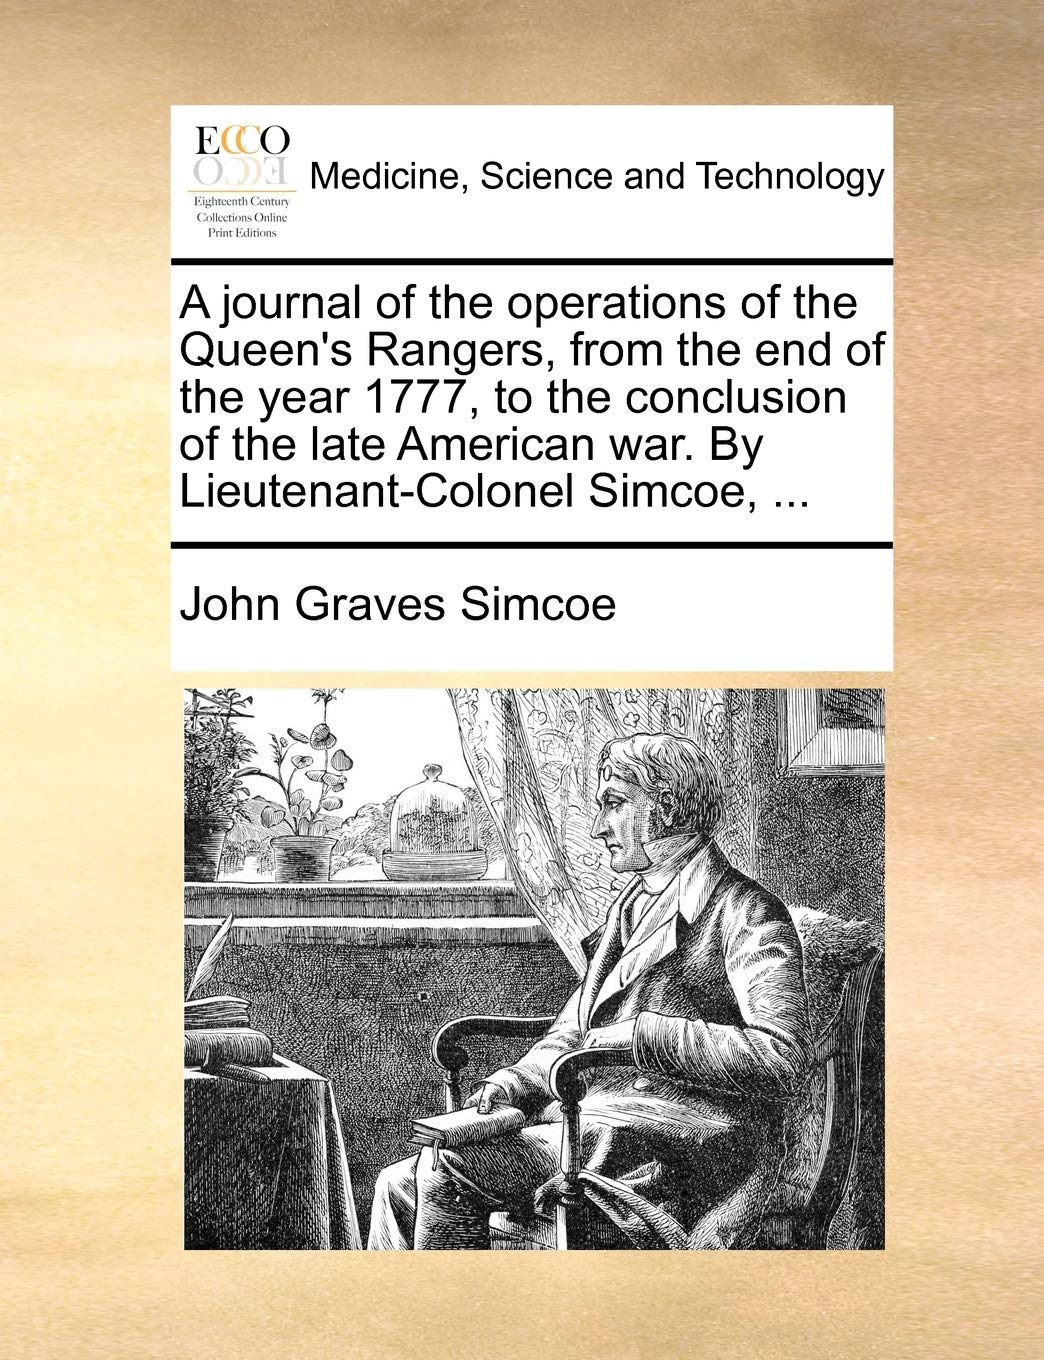 A journal of the operations of the Queen's Rangers, from the end of the year 1777, to the conclusion of the late American war. By Lieutenant-Colonel Simcoe, ...